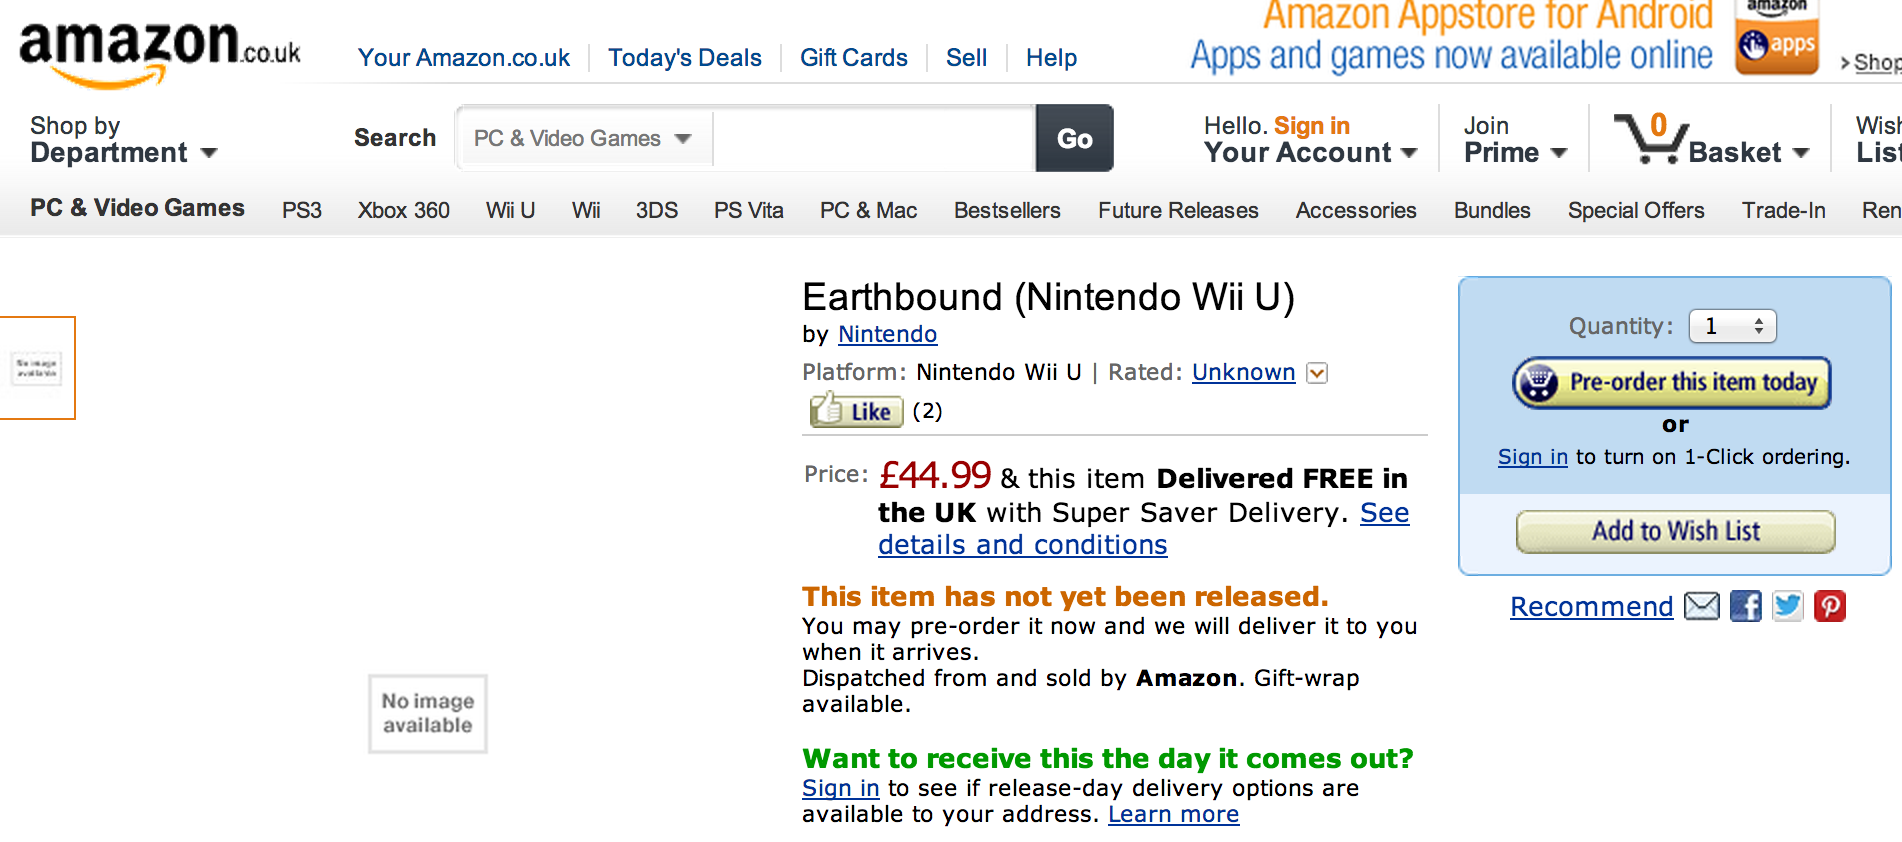 Is Nintendo Preparing A Wii U Earthbound Collection For